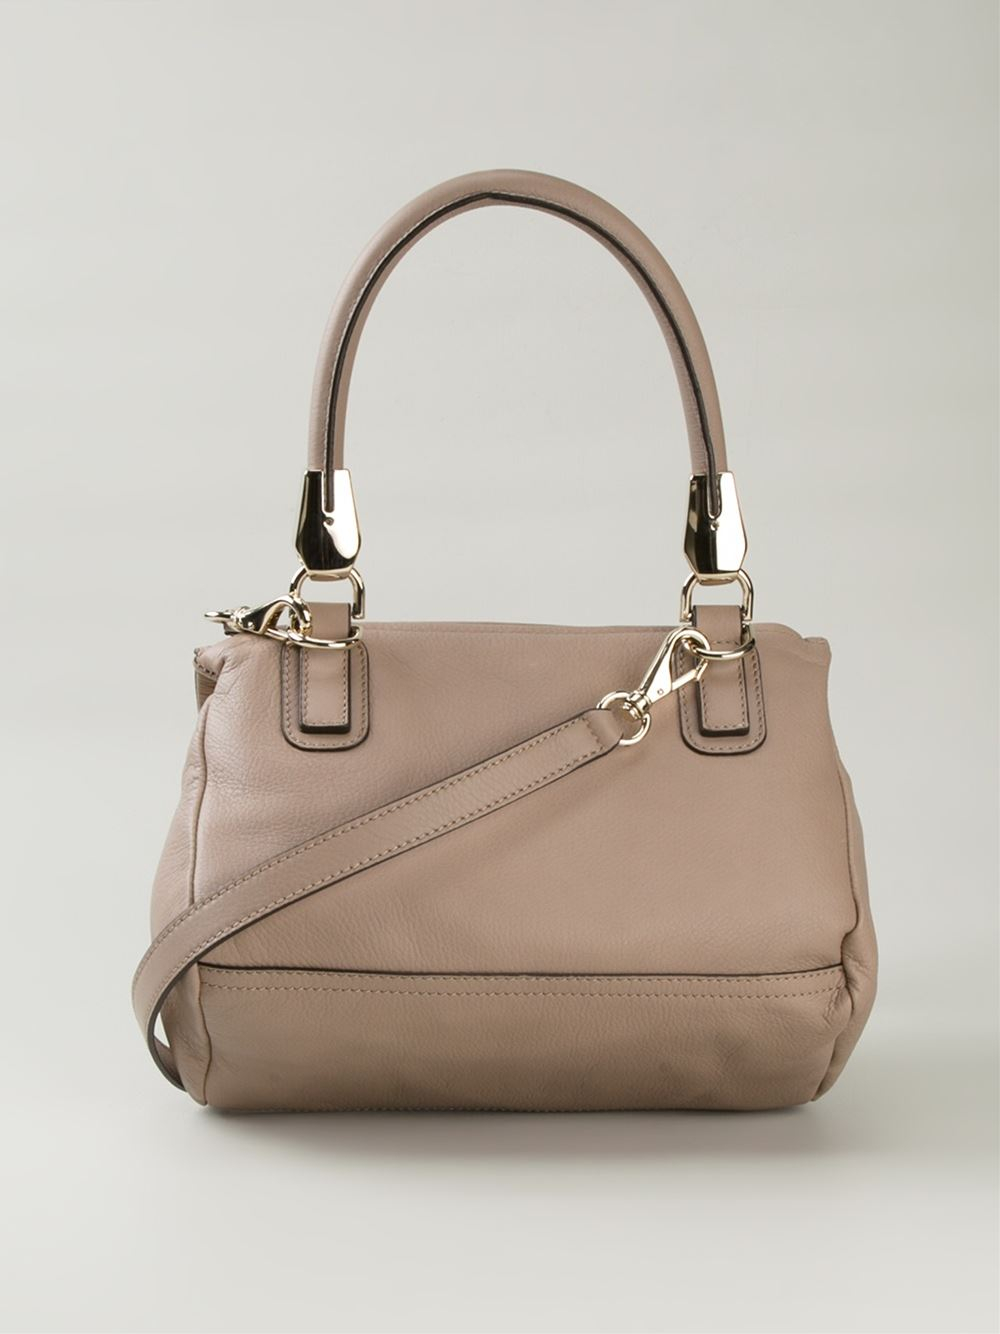 6da3651860d Givenchy Pandora Medium Calf-Leather Shoulder Bag in Natural - Lyst